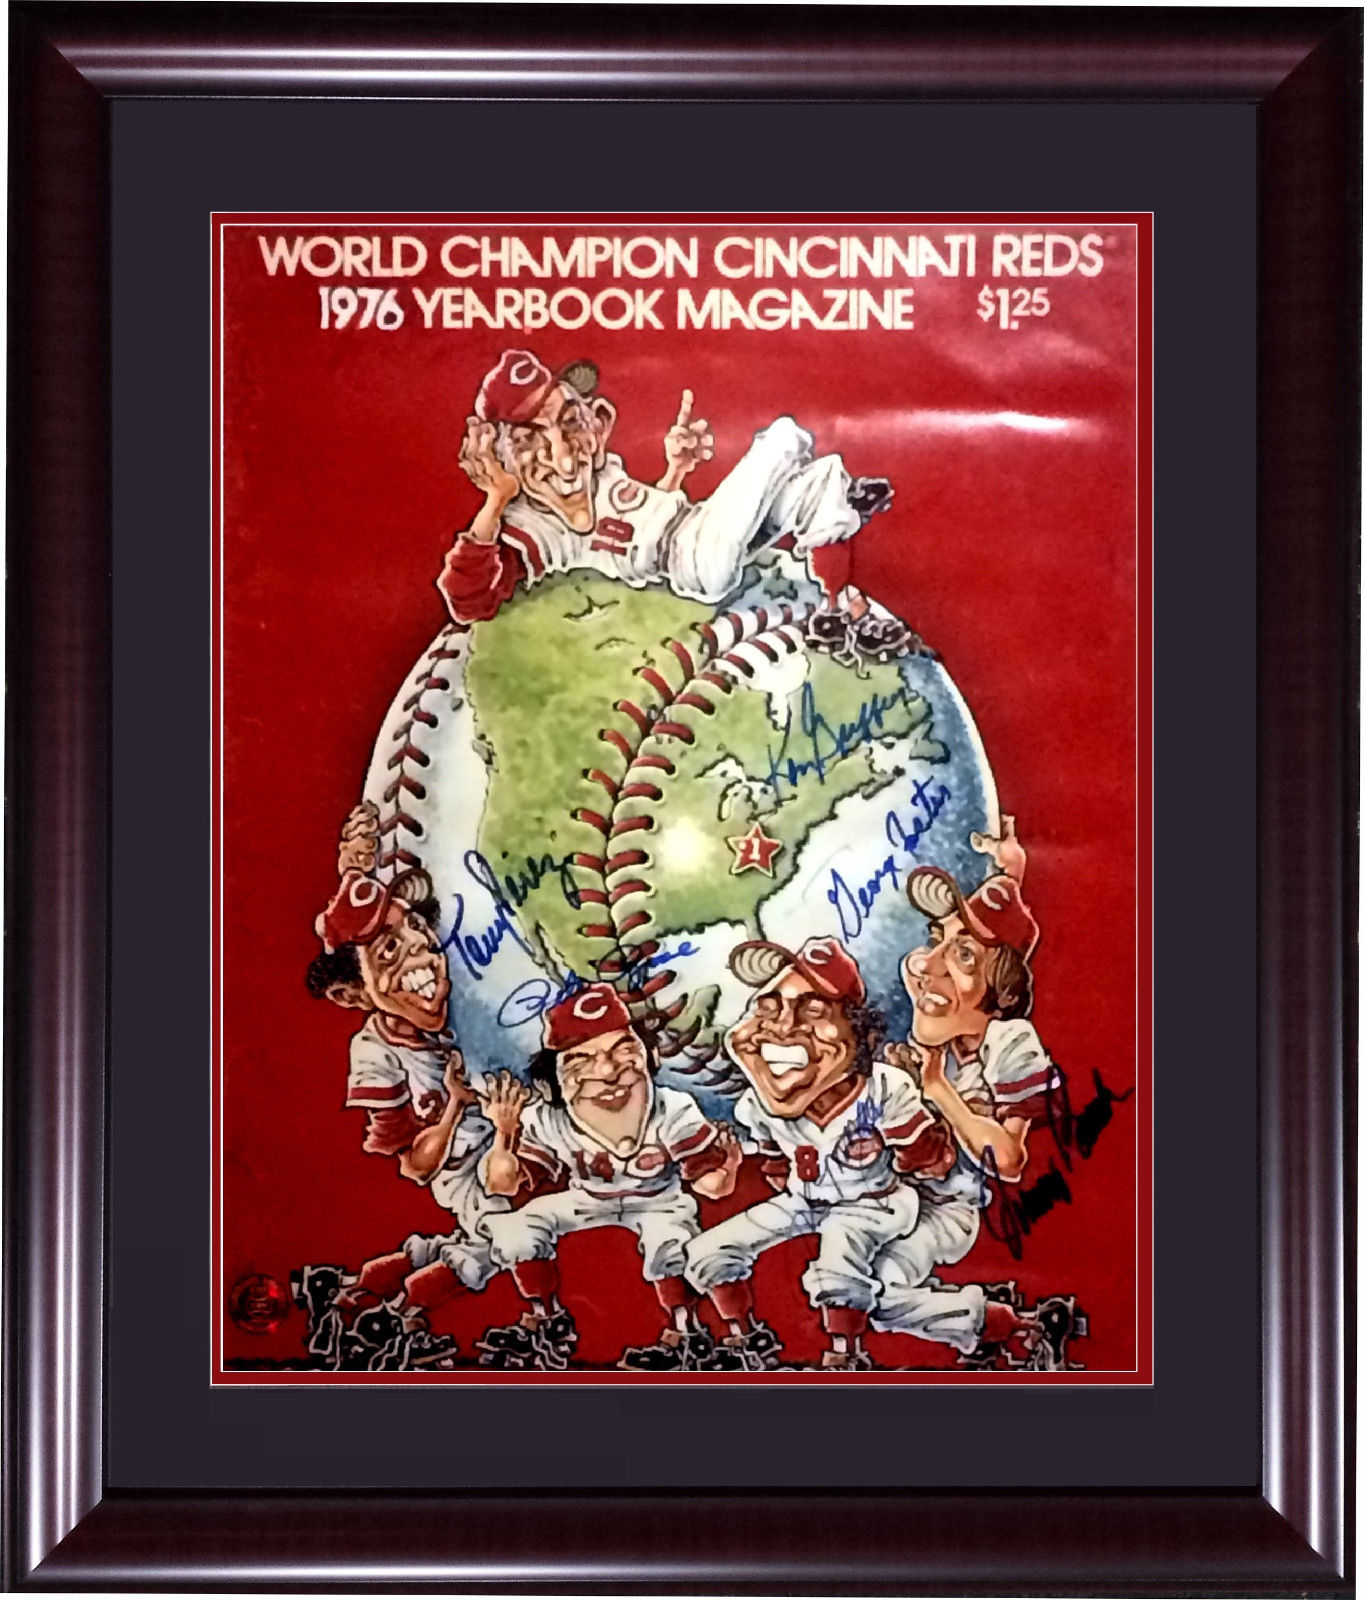 Big Red Machine Reds signed 1976 WS yearbook photo framed 6 auto Rose Bench COA